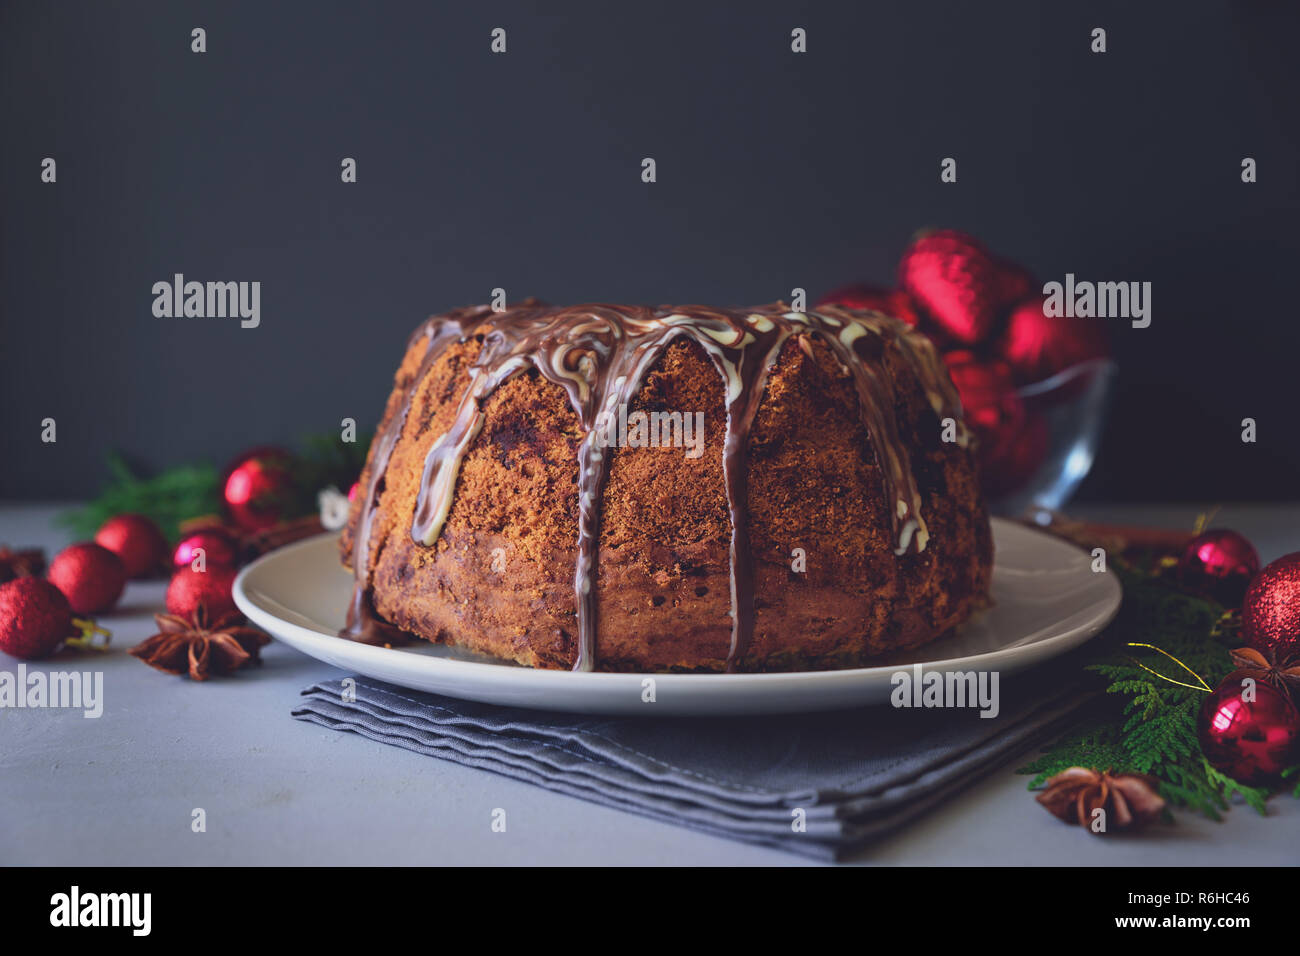 Christmas cake with chocolate icing on gray wooden background. Holiday decorations concept. Top view. Flat lay. Copy space. Toned Stock Photo